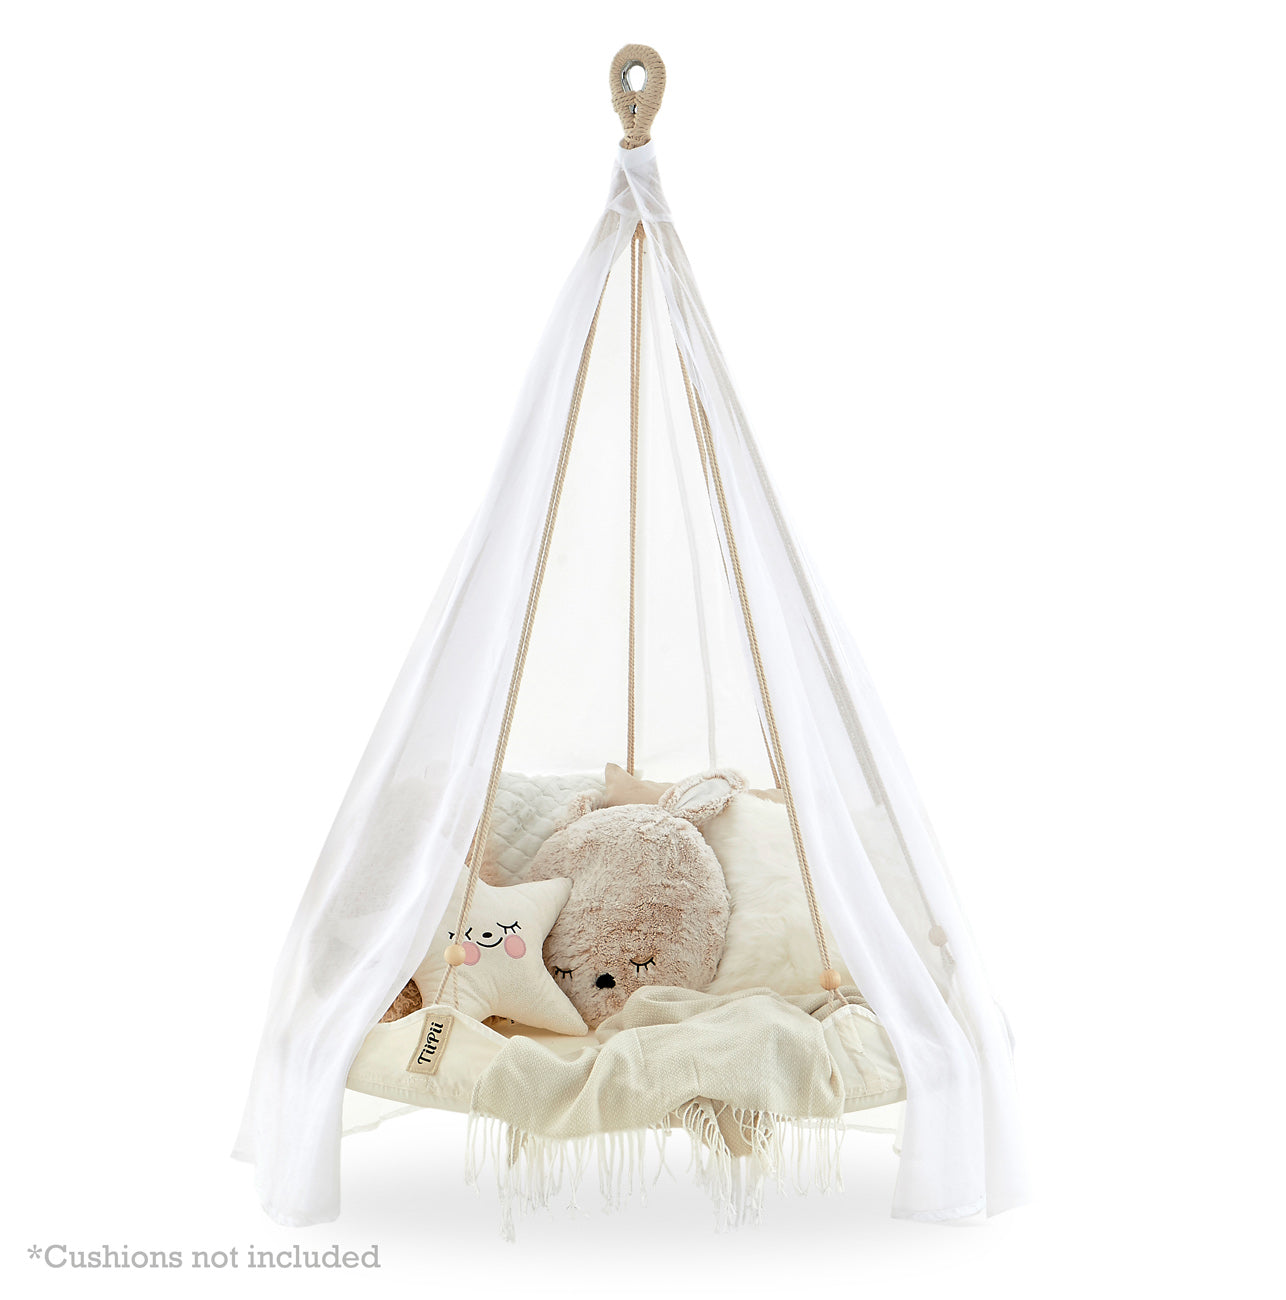 1.0m Bambino Hanging Kids Bed